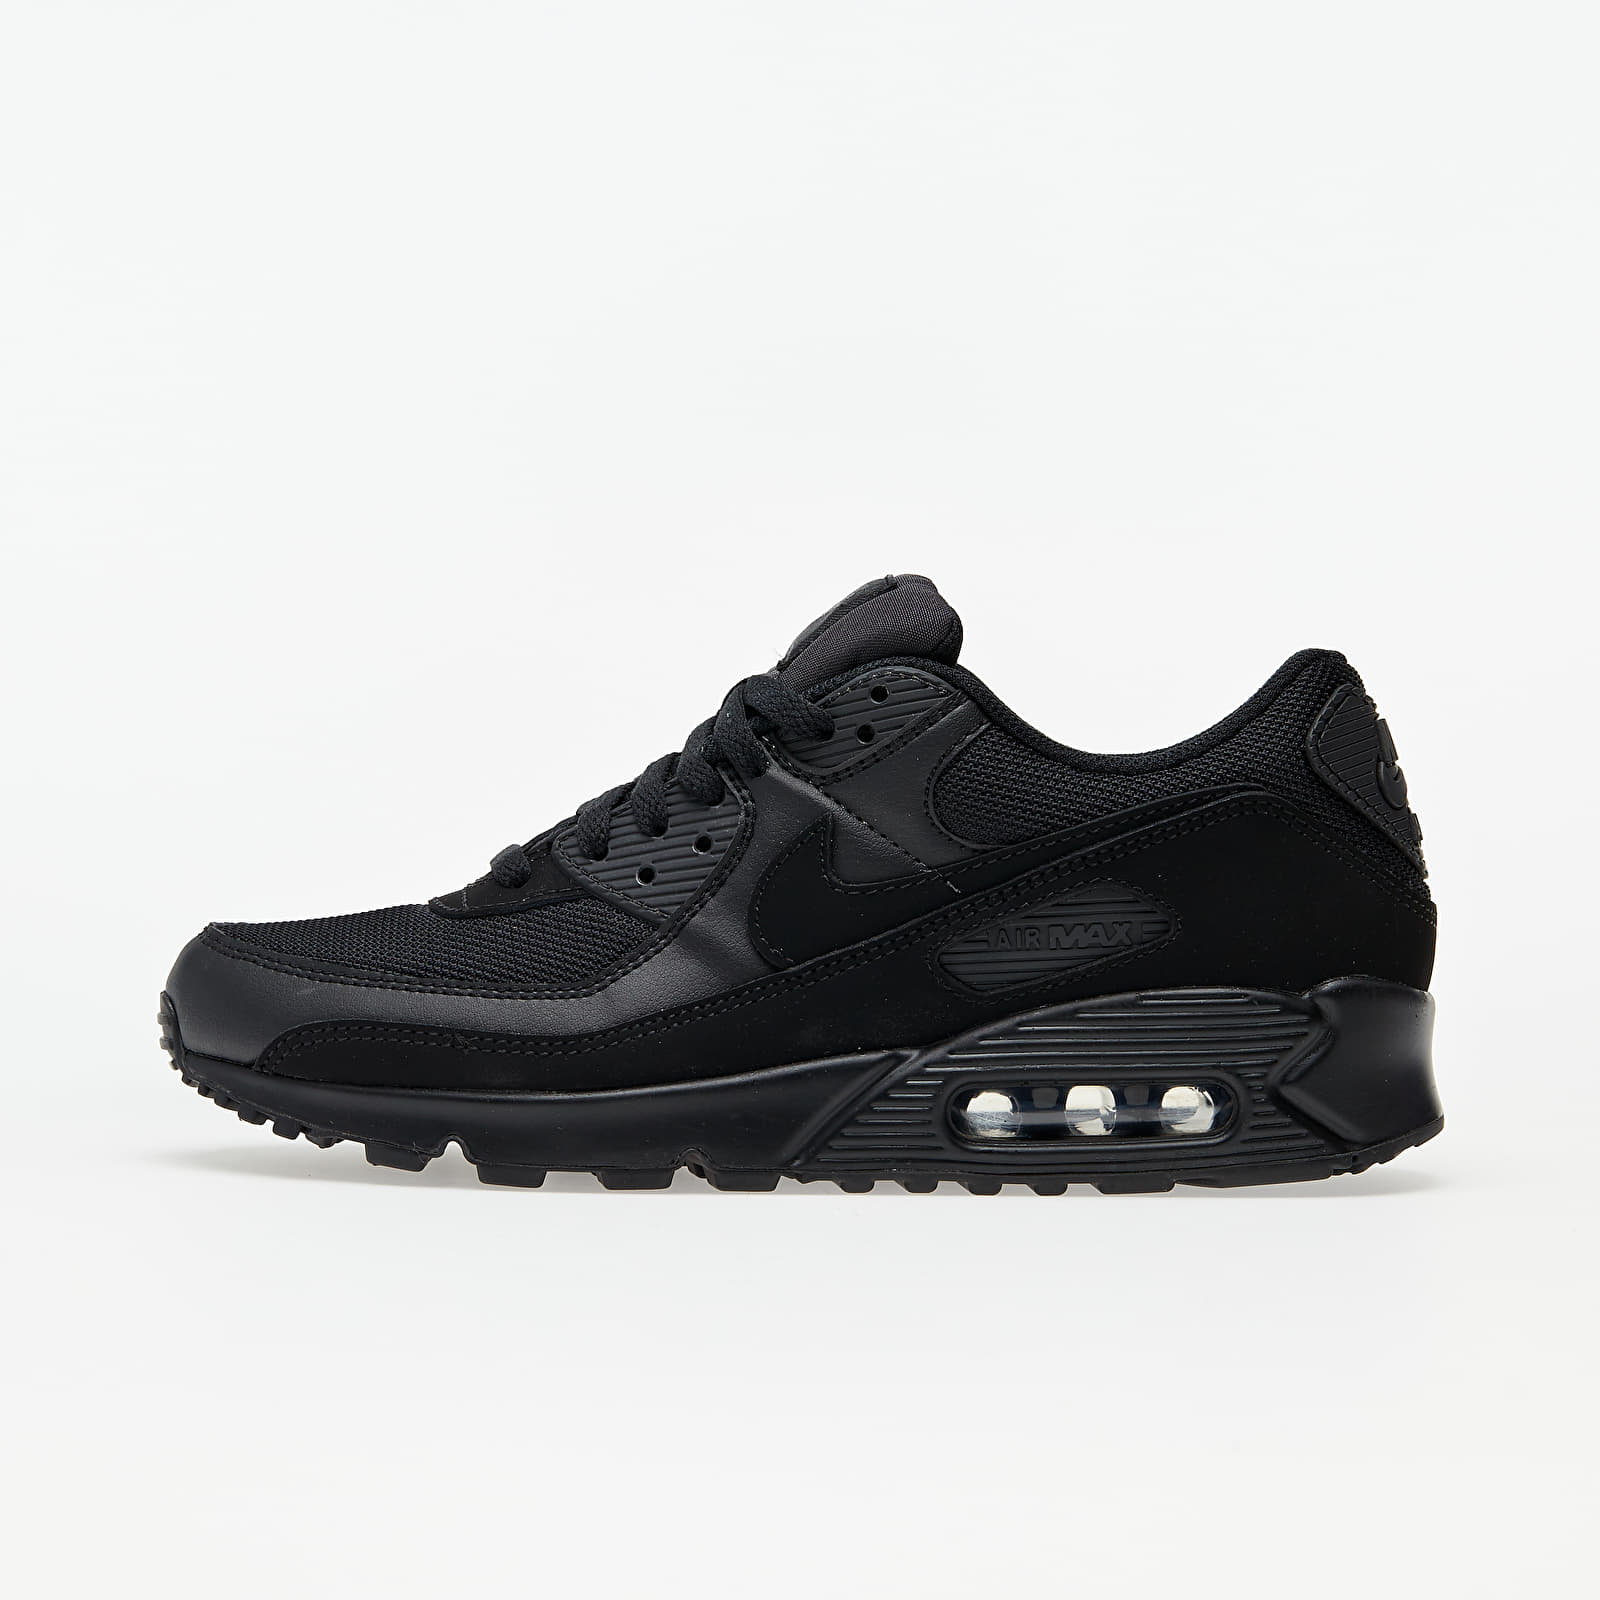 Nike Air Max 90 Black/ Black-Black-White EUR 42